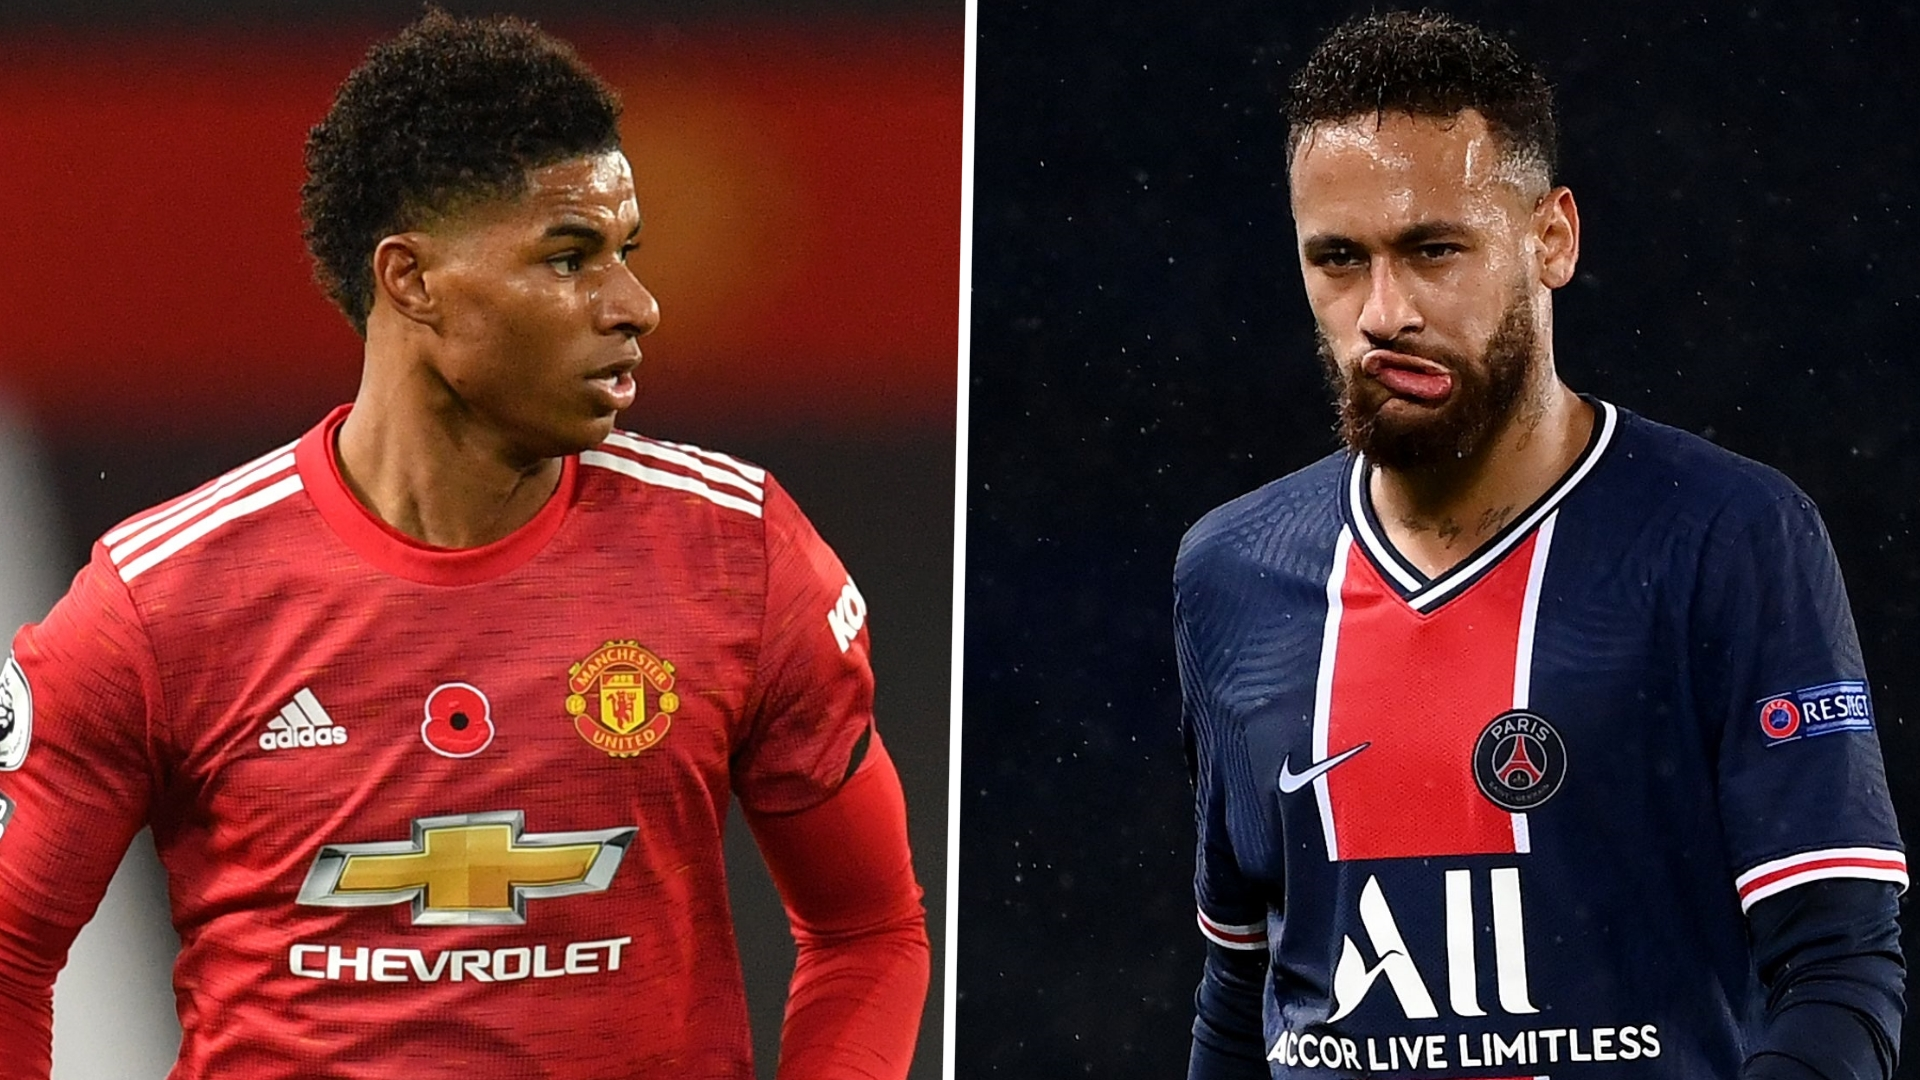 'I'd rather have Rashford in my team than Neymar!' – Man Utd striker ranked above 'embarrassing' PSG star by Ince